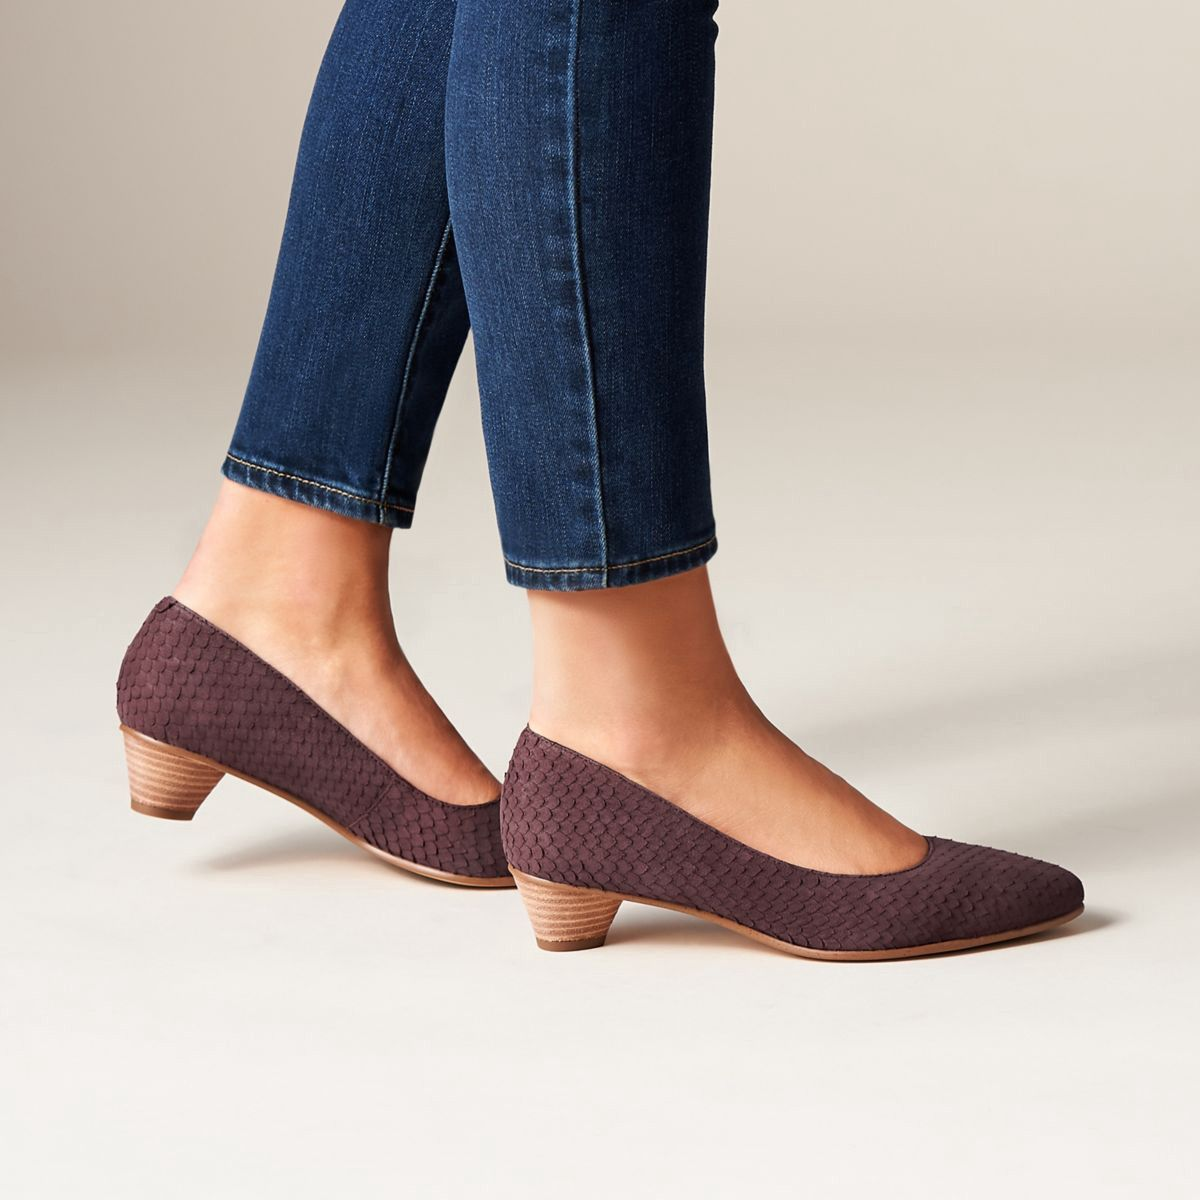 Clarks Mena Bloom - Womens Shoes